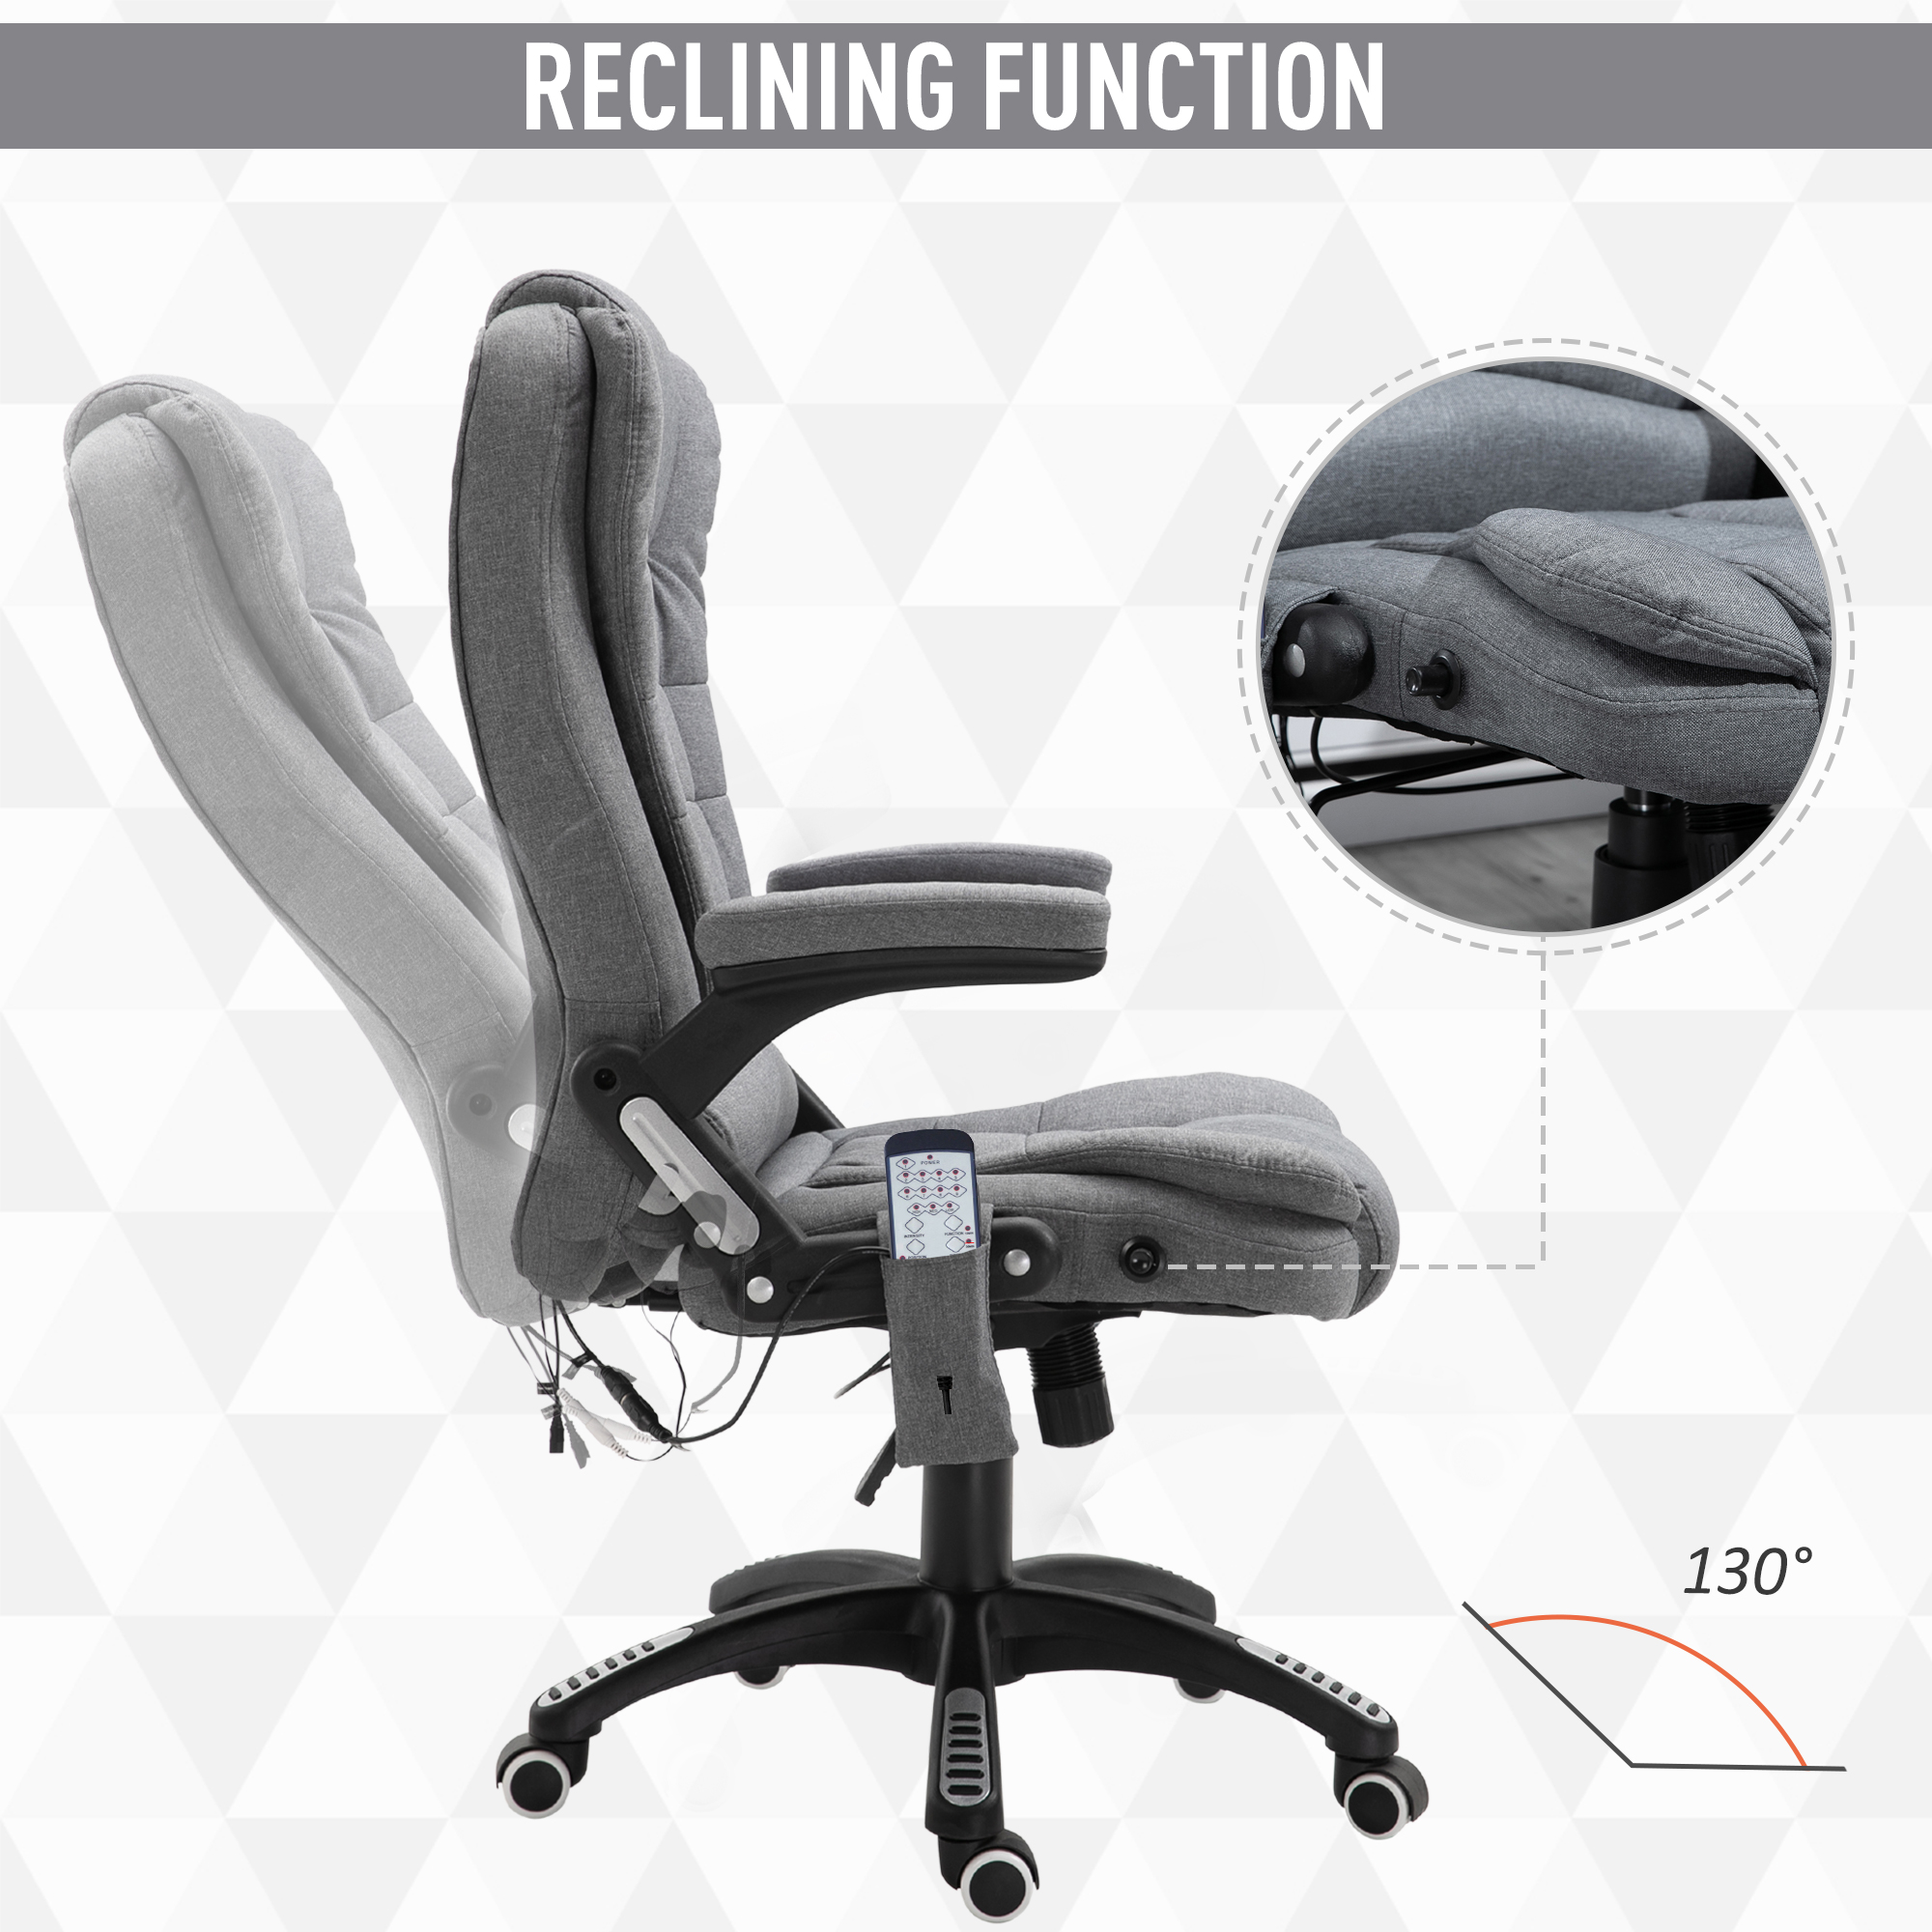 thumbnail 20 - Executive Reclining Chair 130°w/6 Heating Massage Points Relaxing Headrest